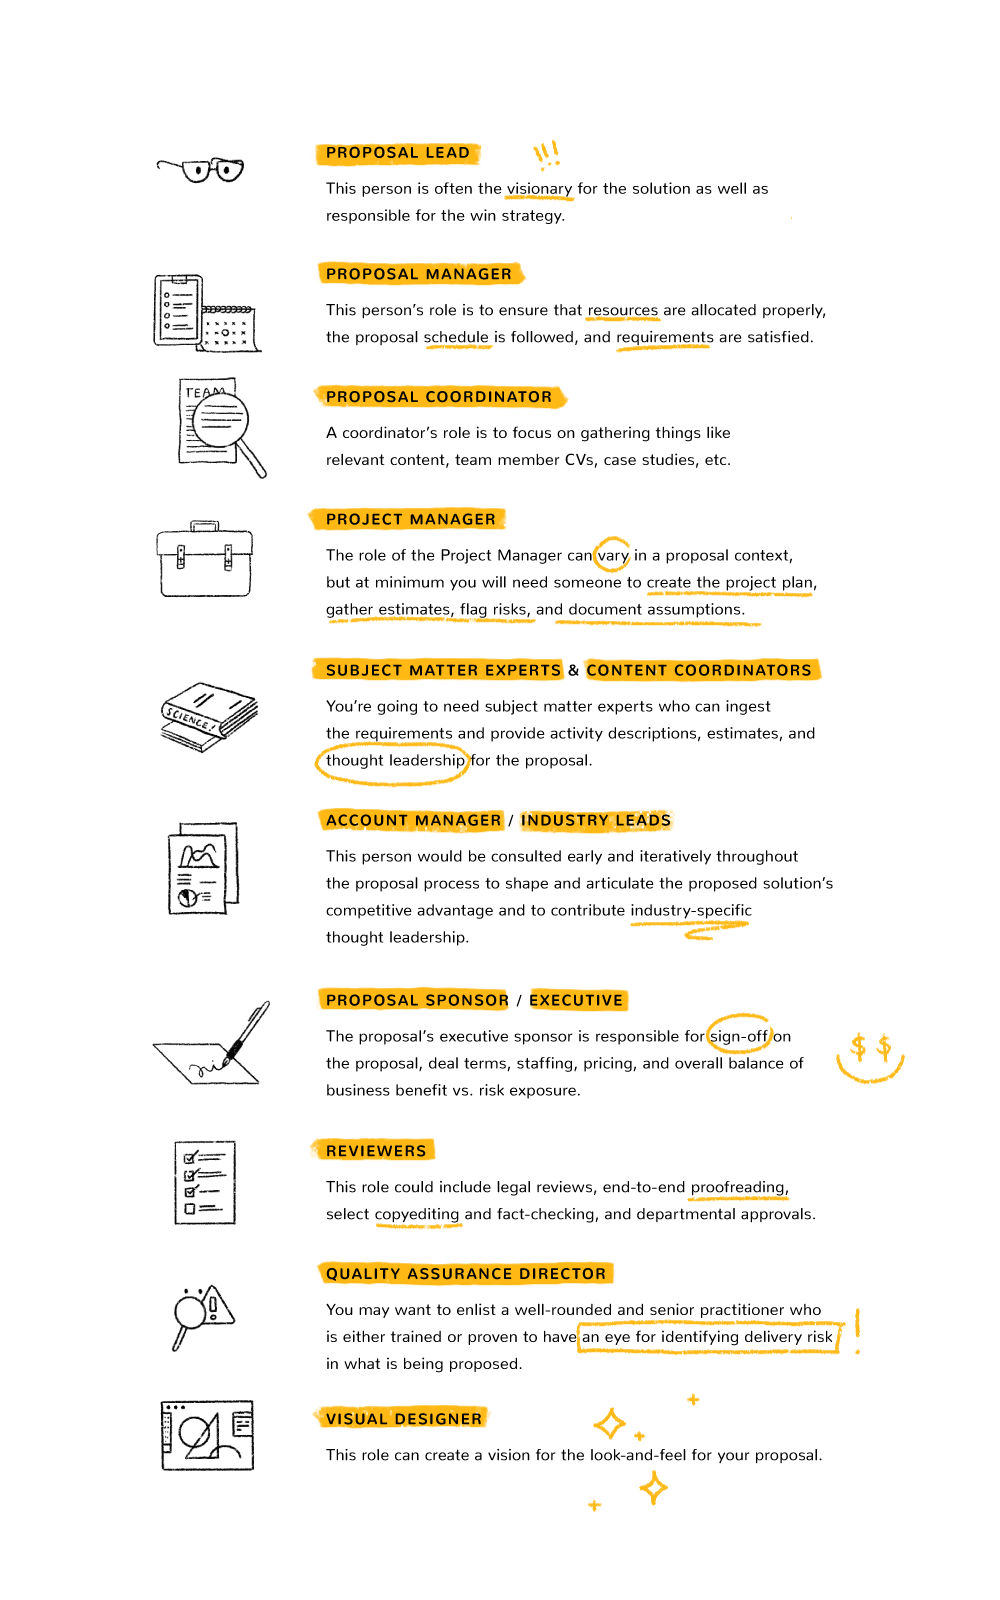 Infographic Of Building A Proposal Team with what roles to include